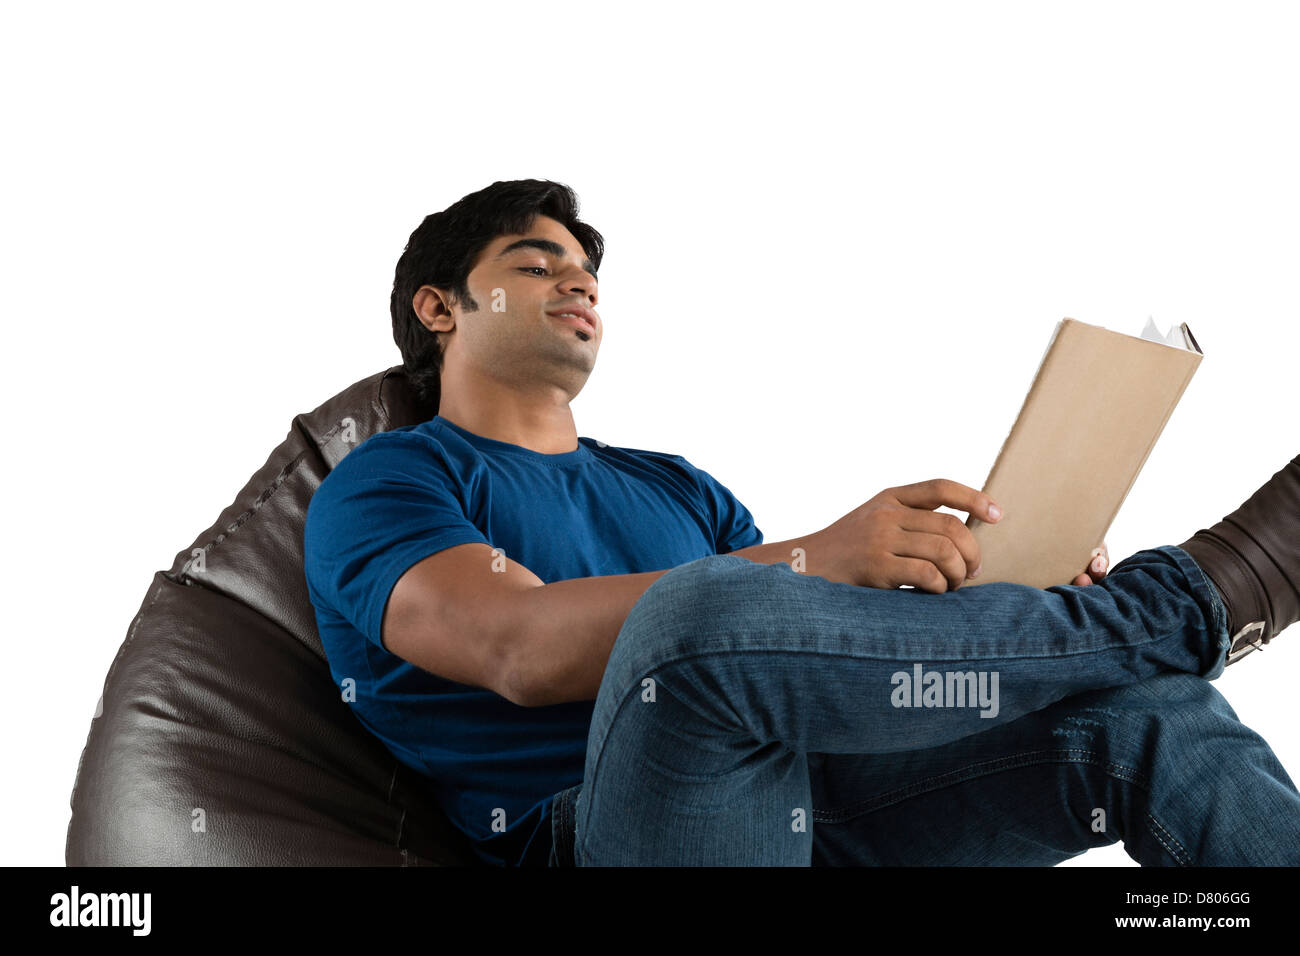 Man sitting on a bean bag and reading a book - Stock Image